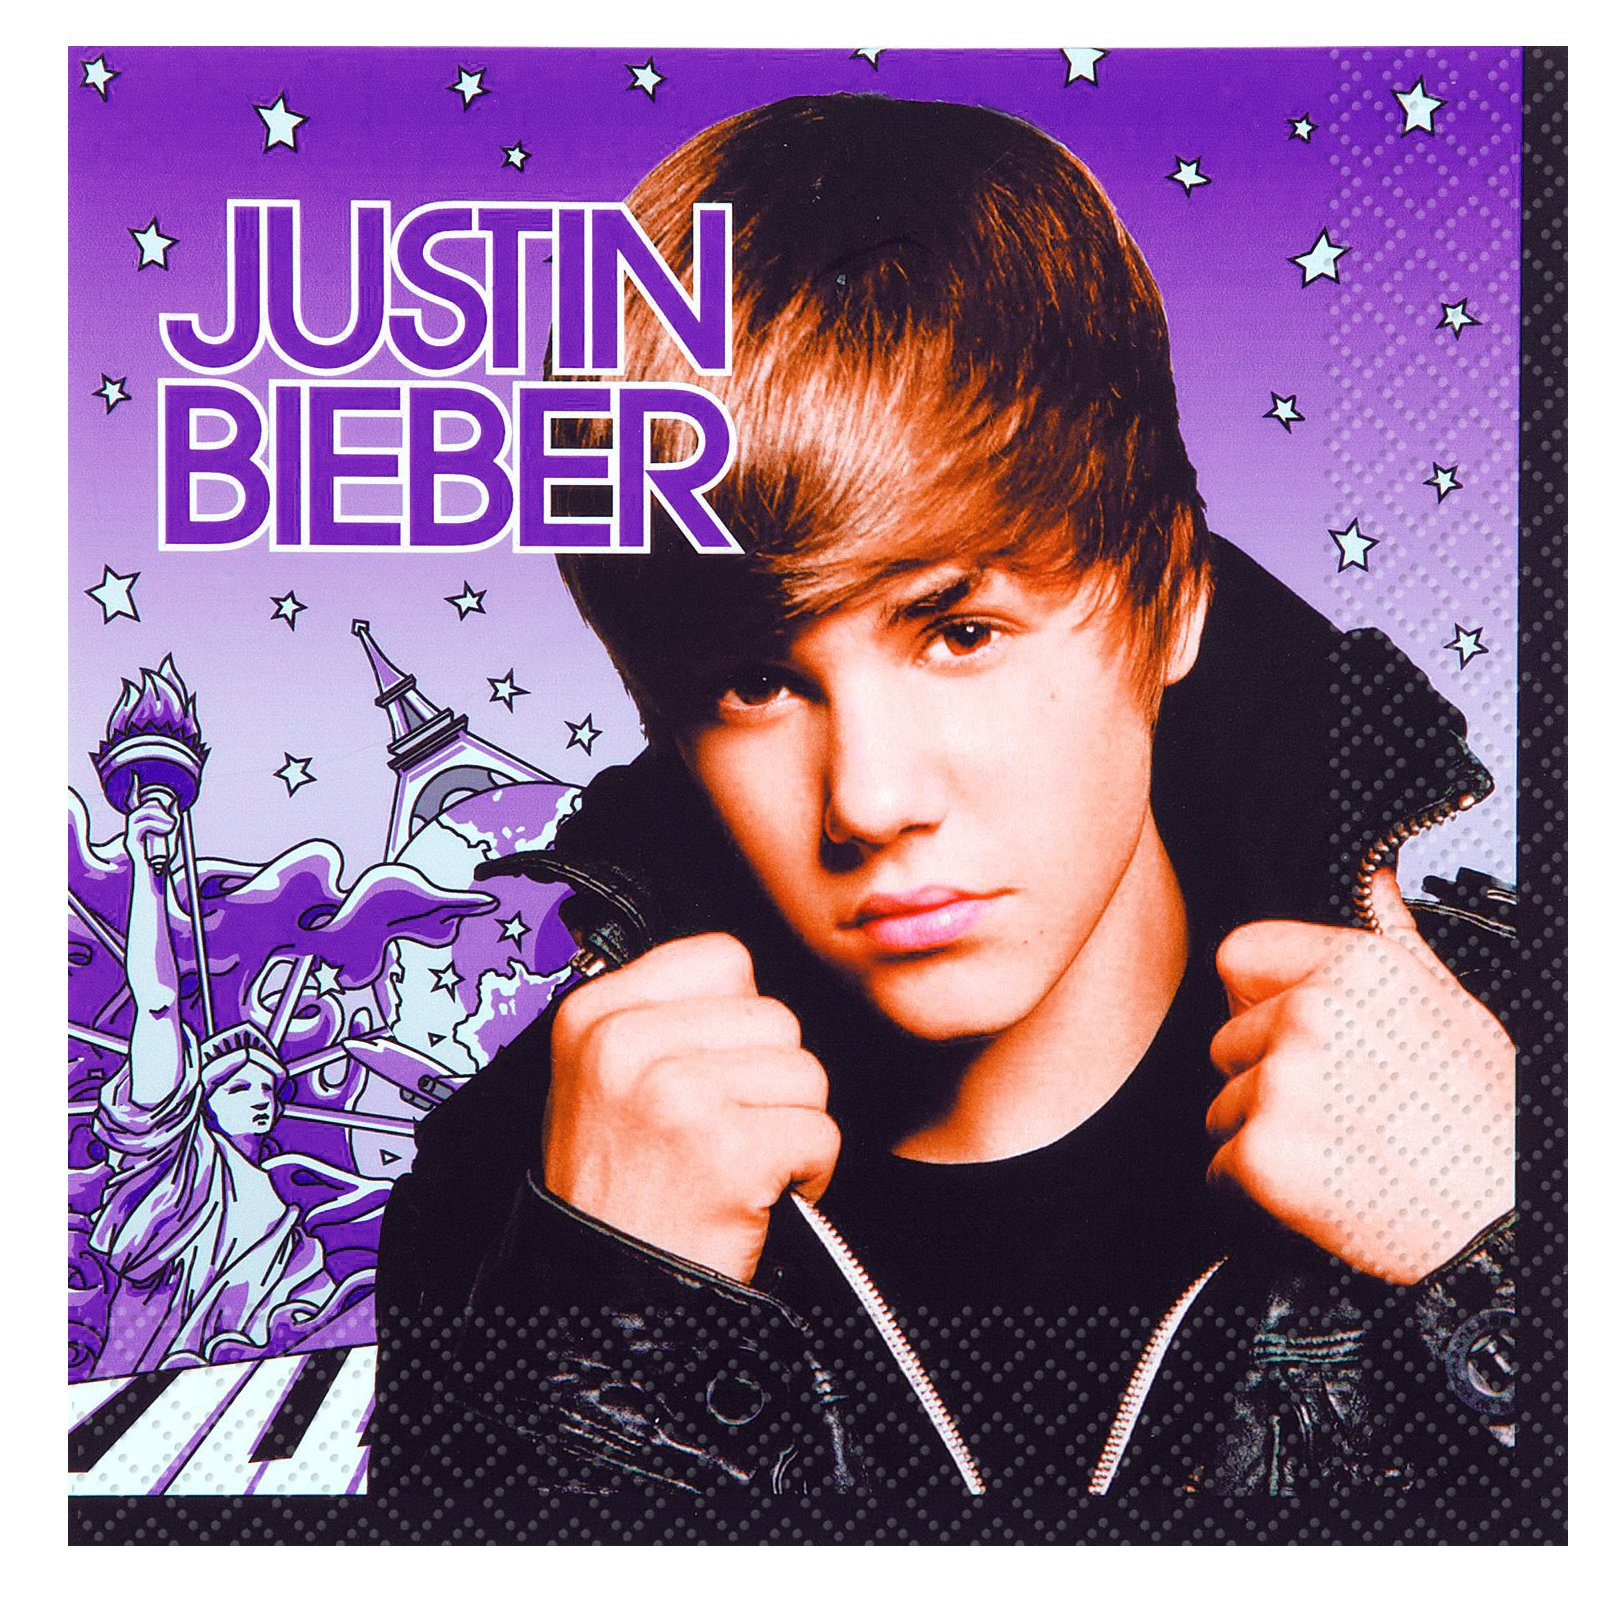 Justin Bieber Lunch Napkins (16 count)